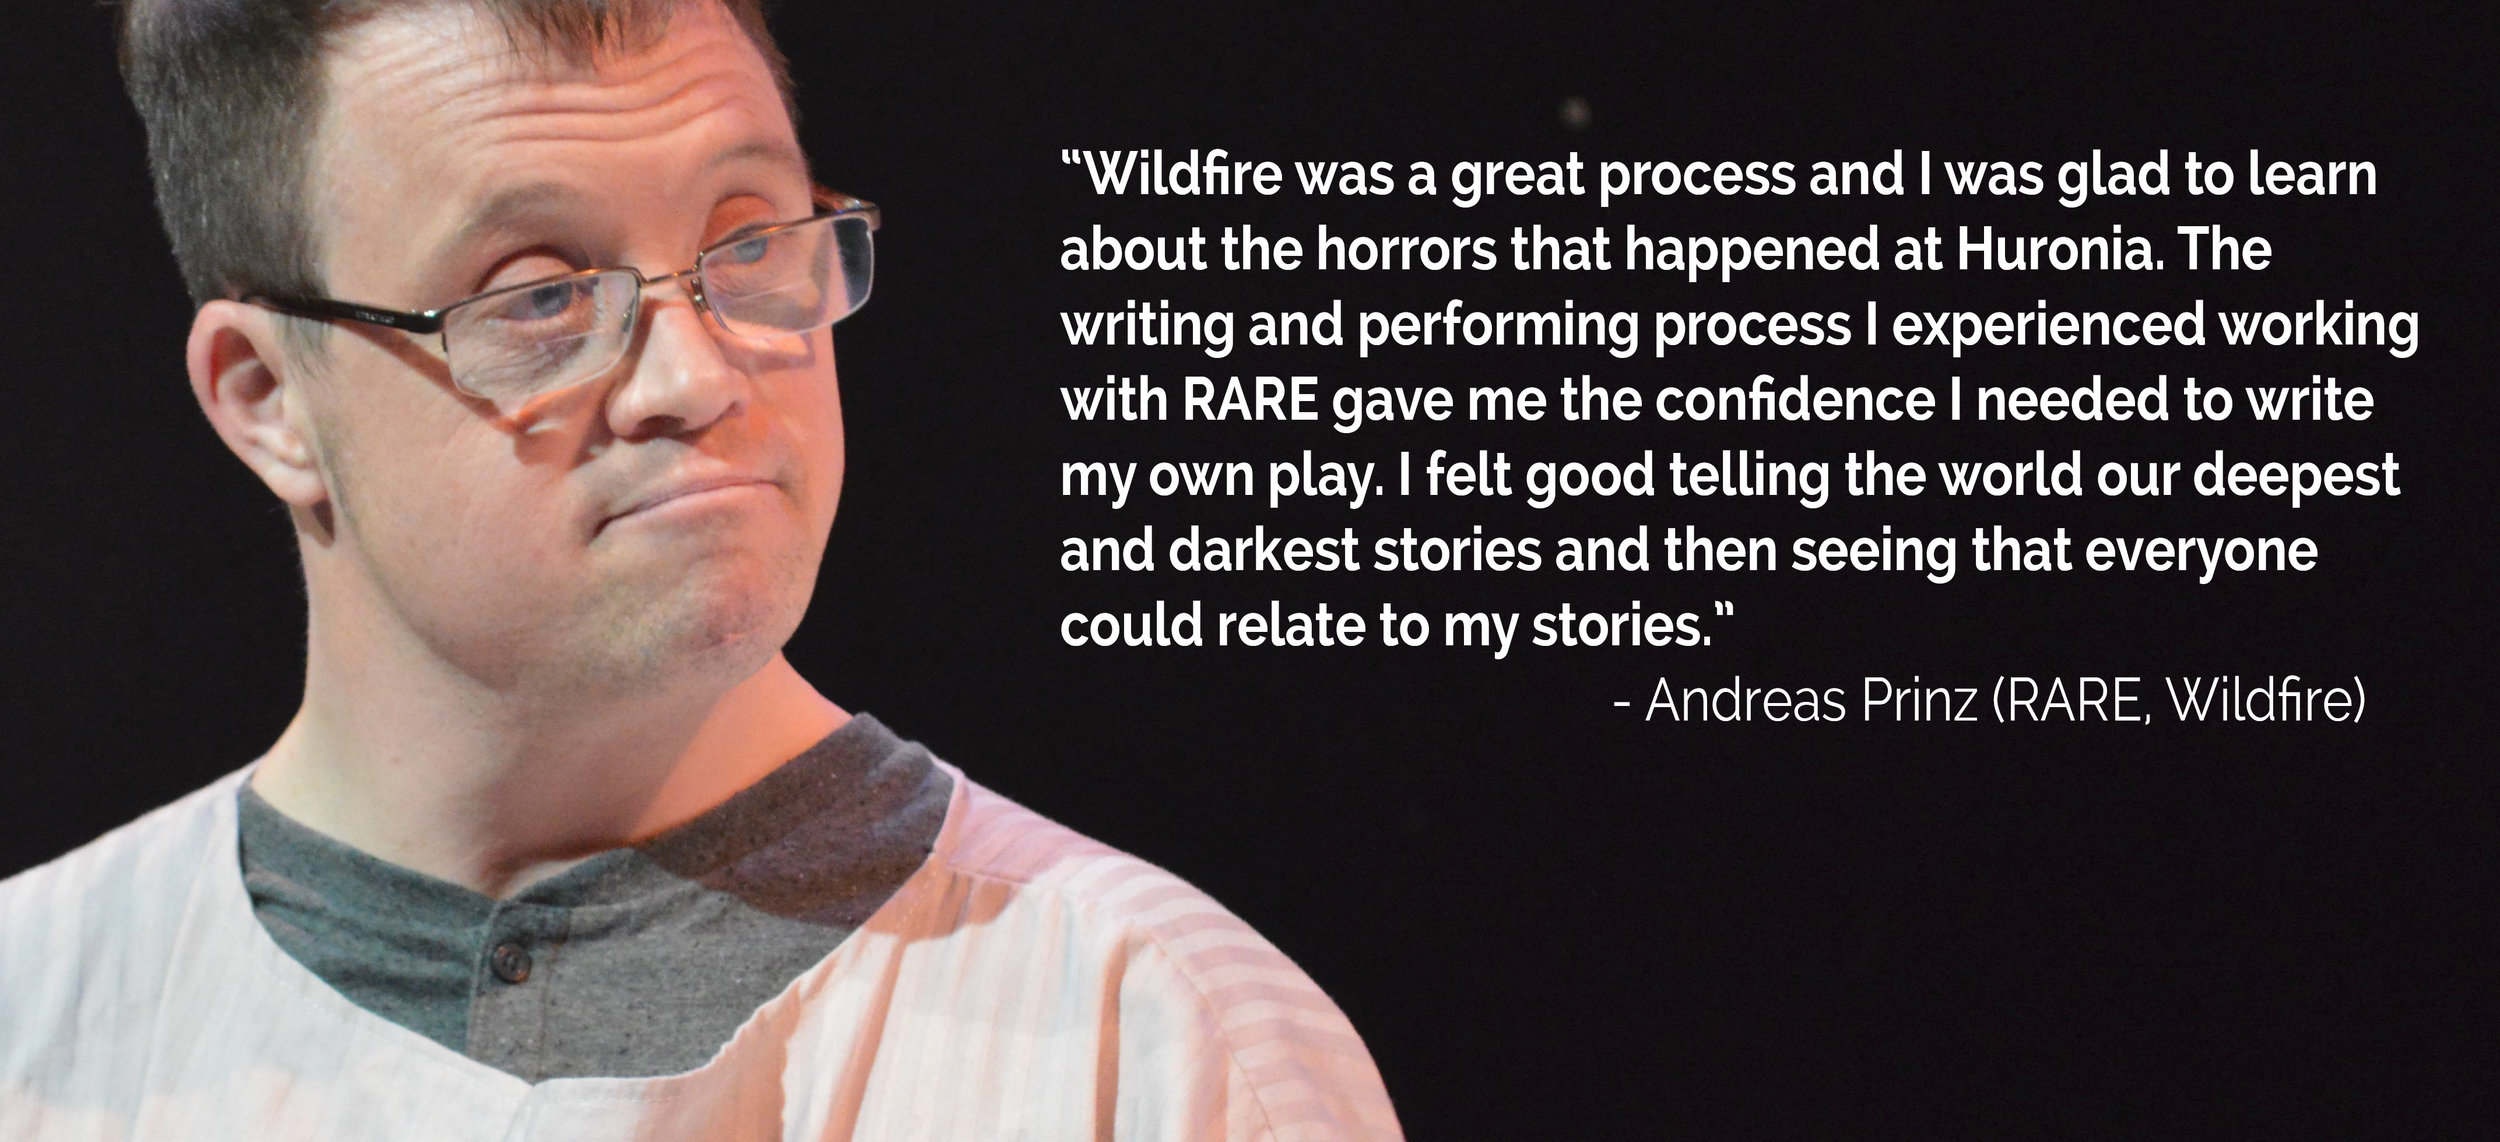 AndreasP quote.jpg